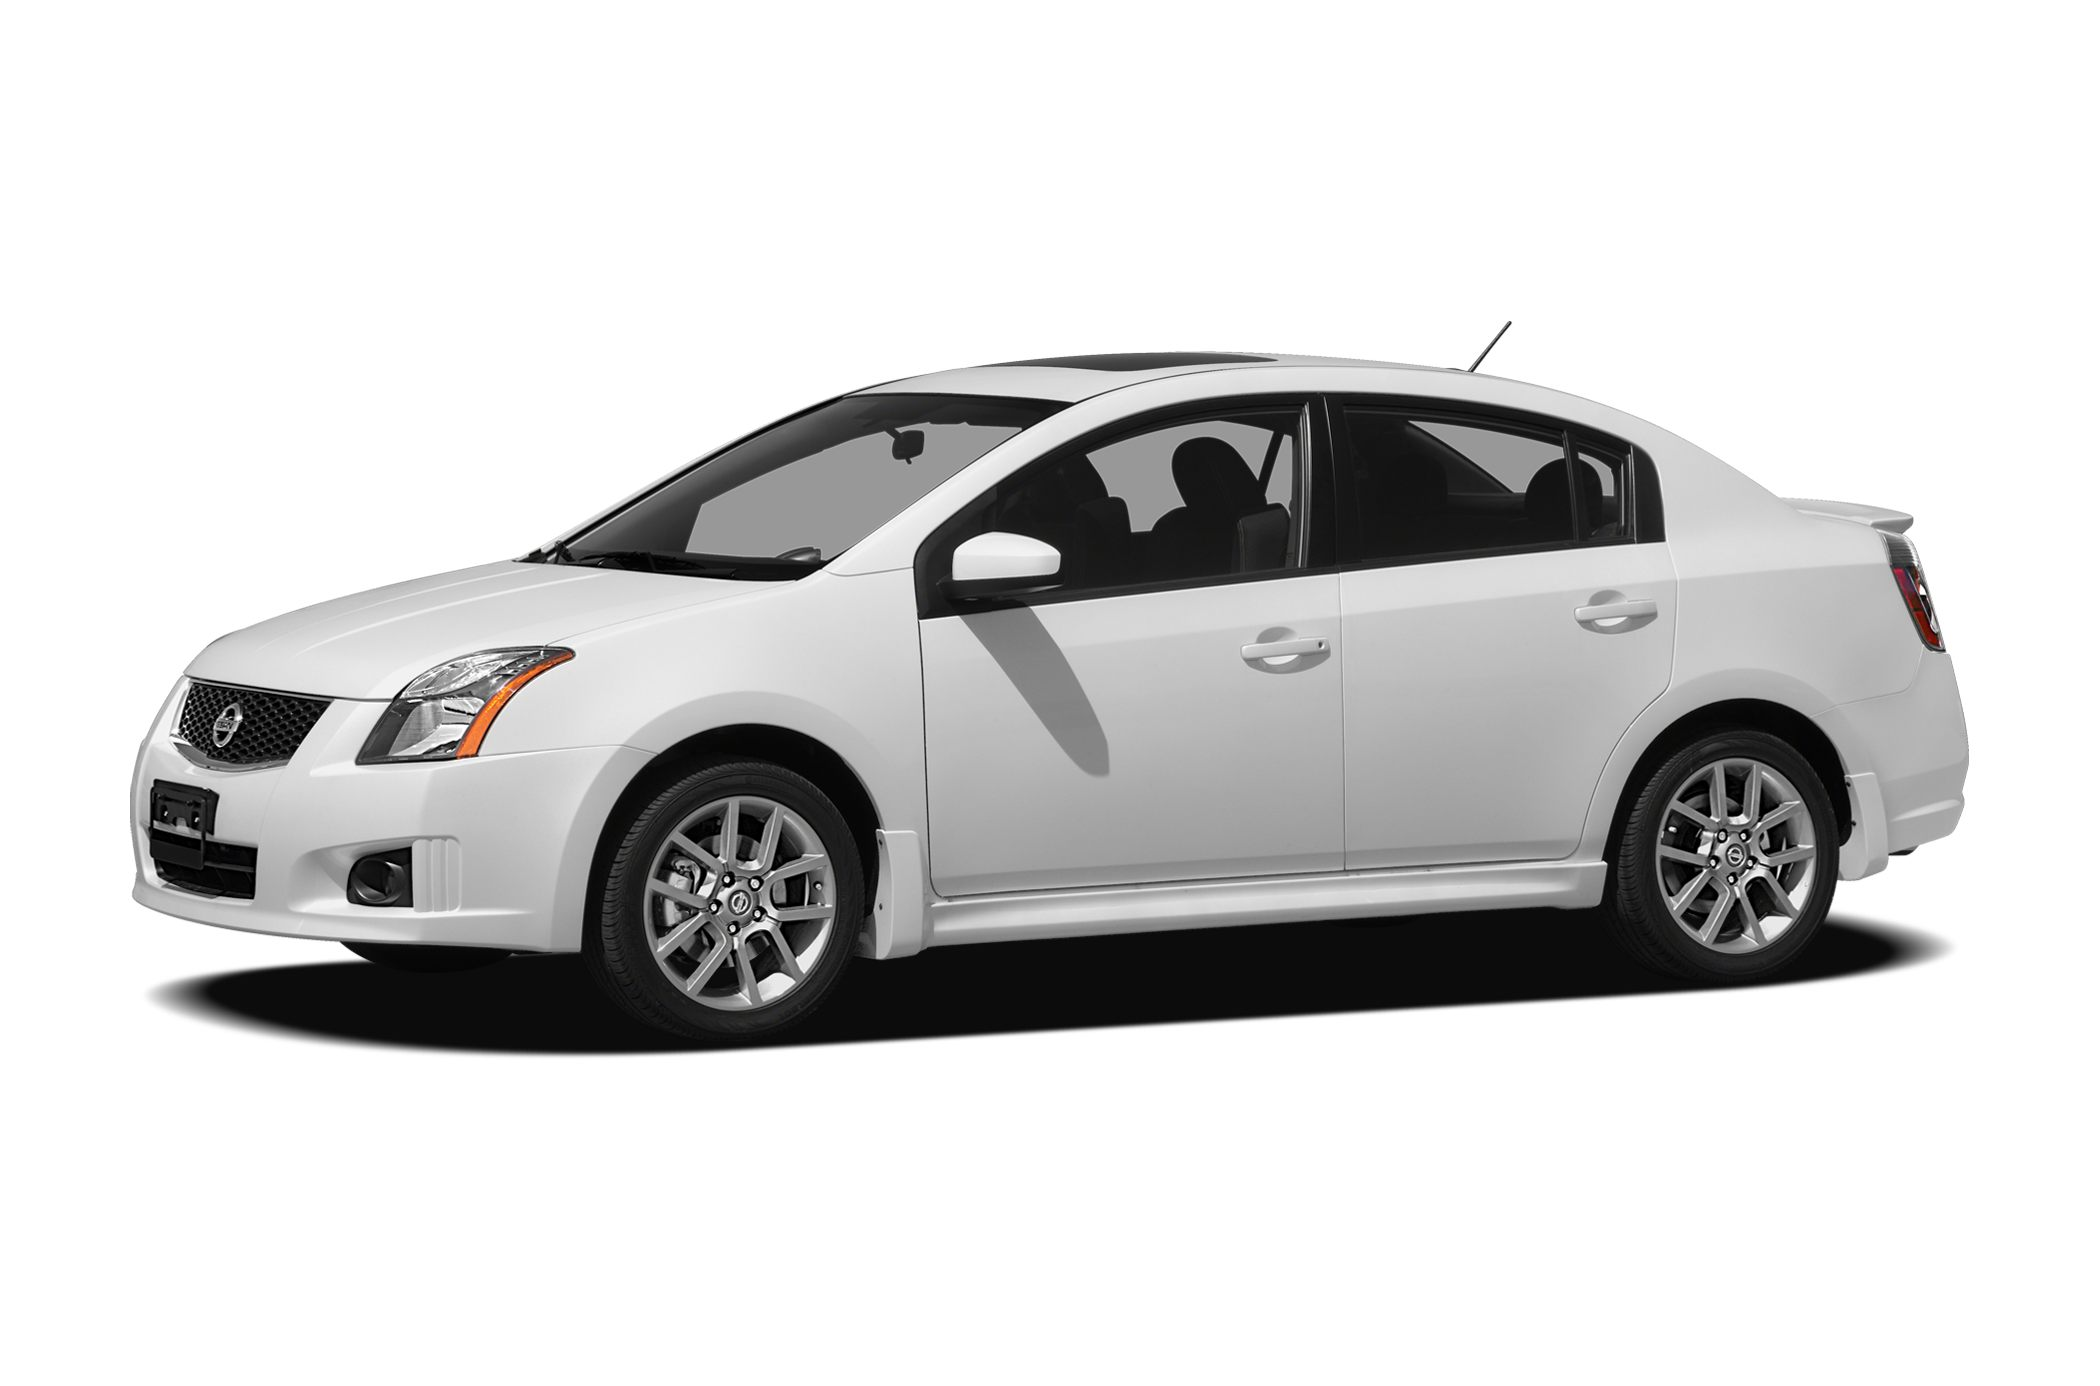 2012 Nissan Sentra SE-R Sedan for sale in Albany for $0 with 38,256 miles